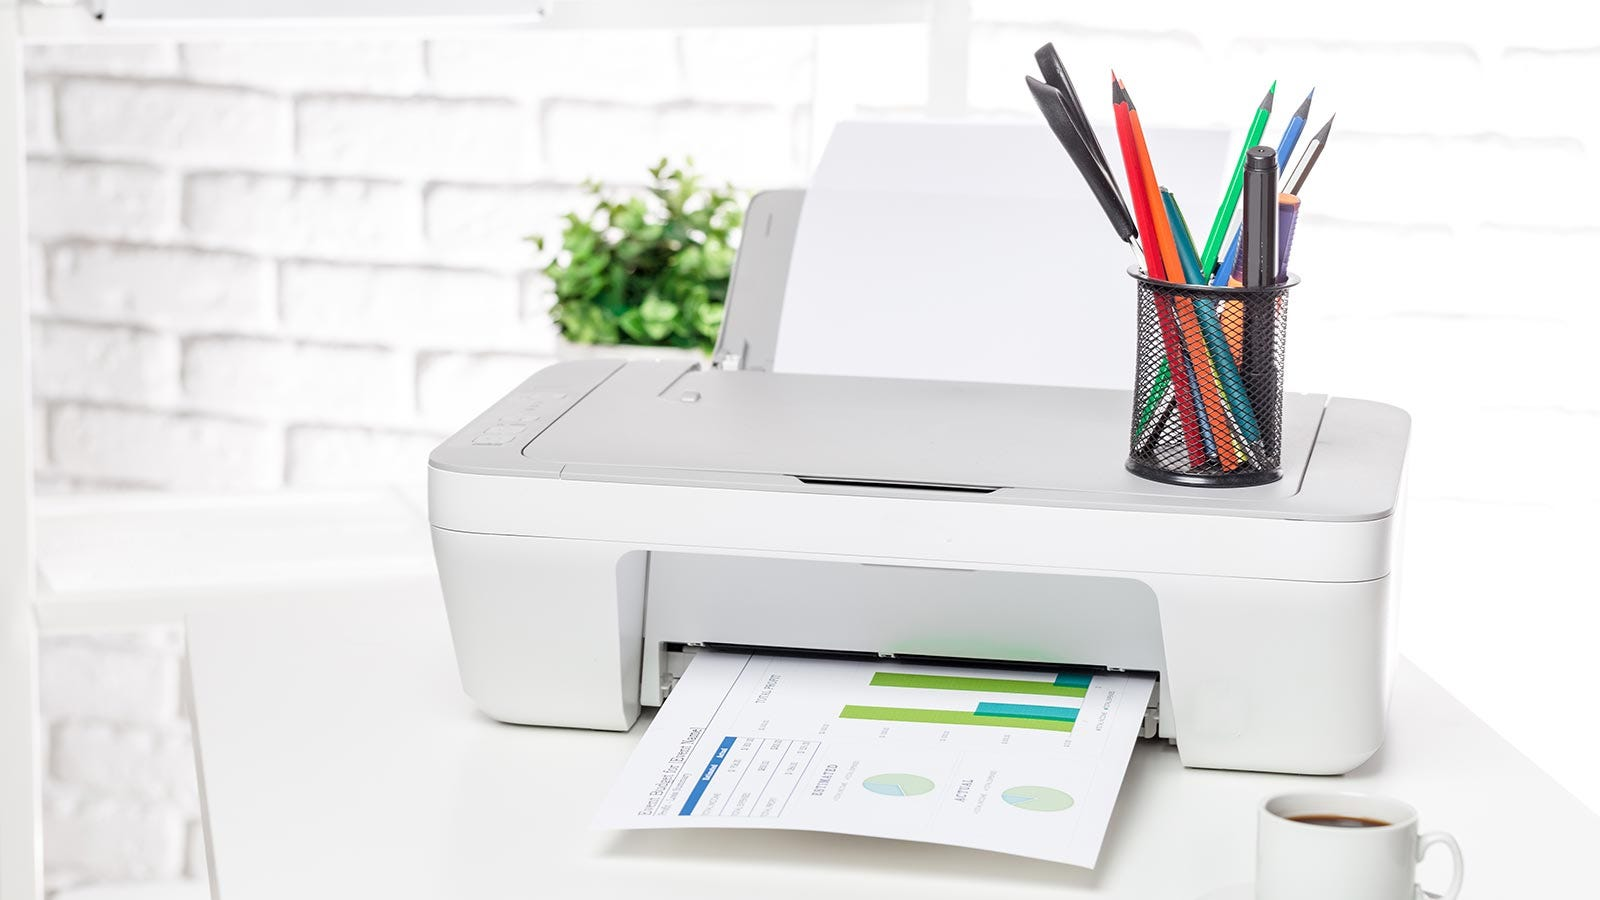 A home office printer sitting on a table.